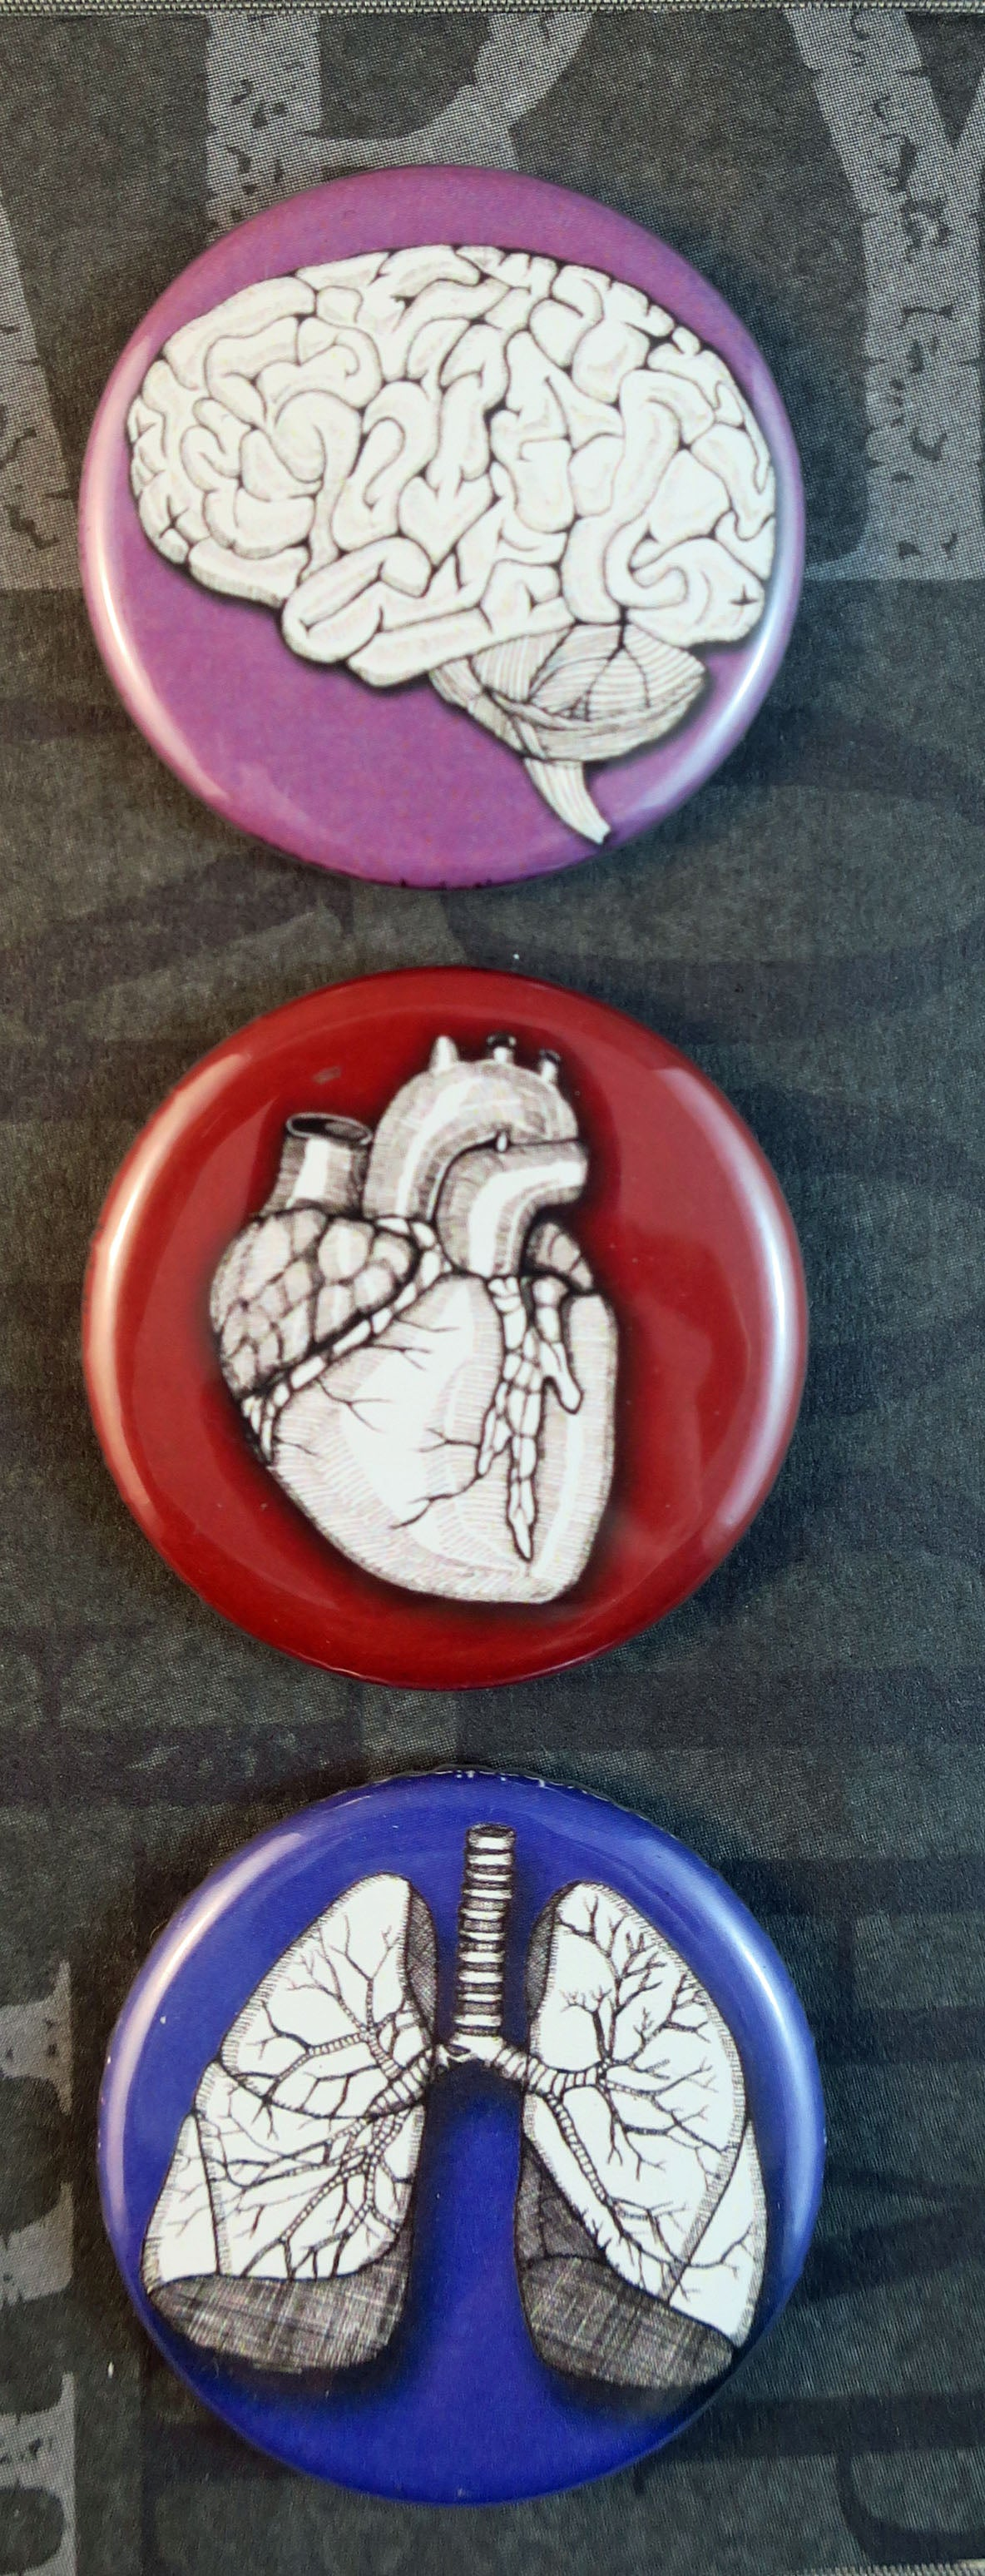 Human Anatomy Buttons and Magnets - the organs... Heart, Lungs and Brain - individual or as a set